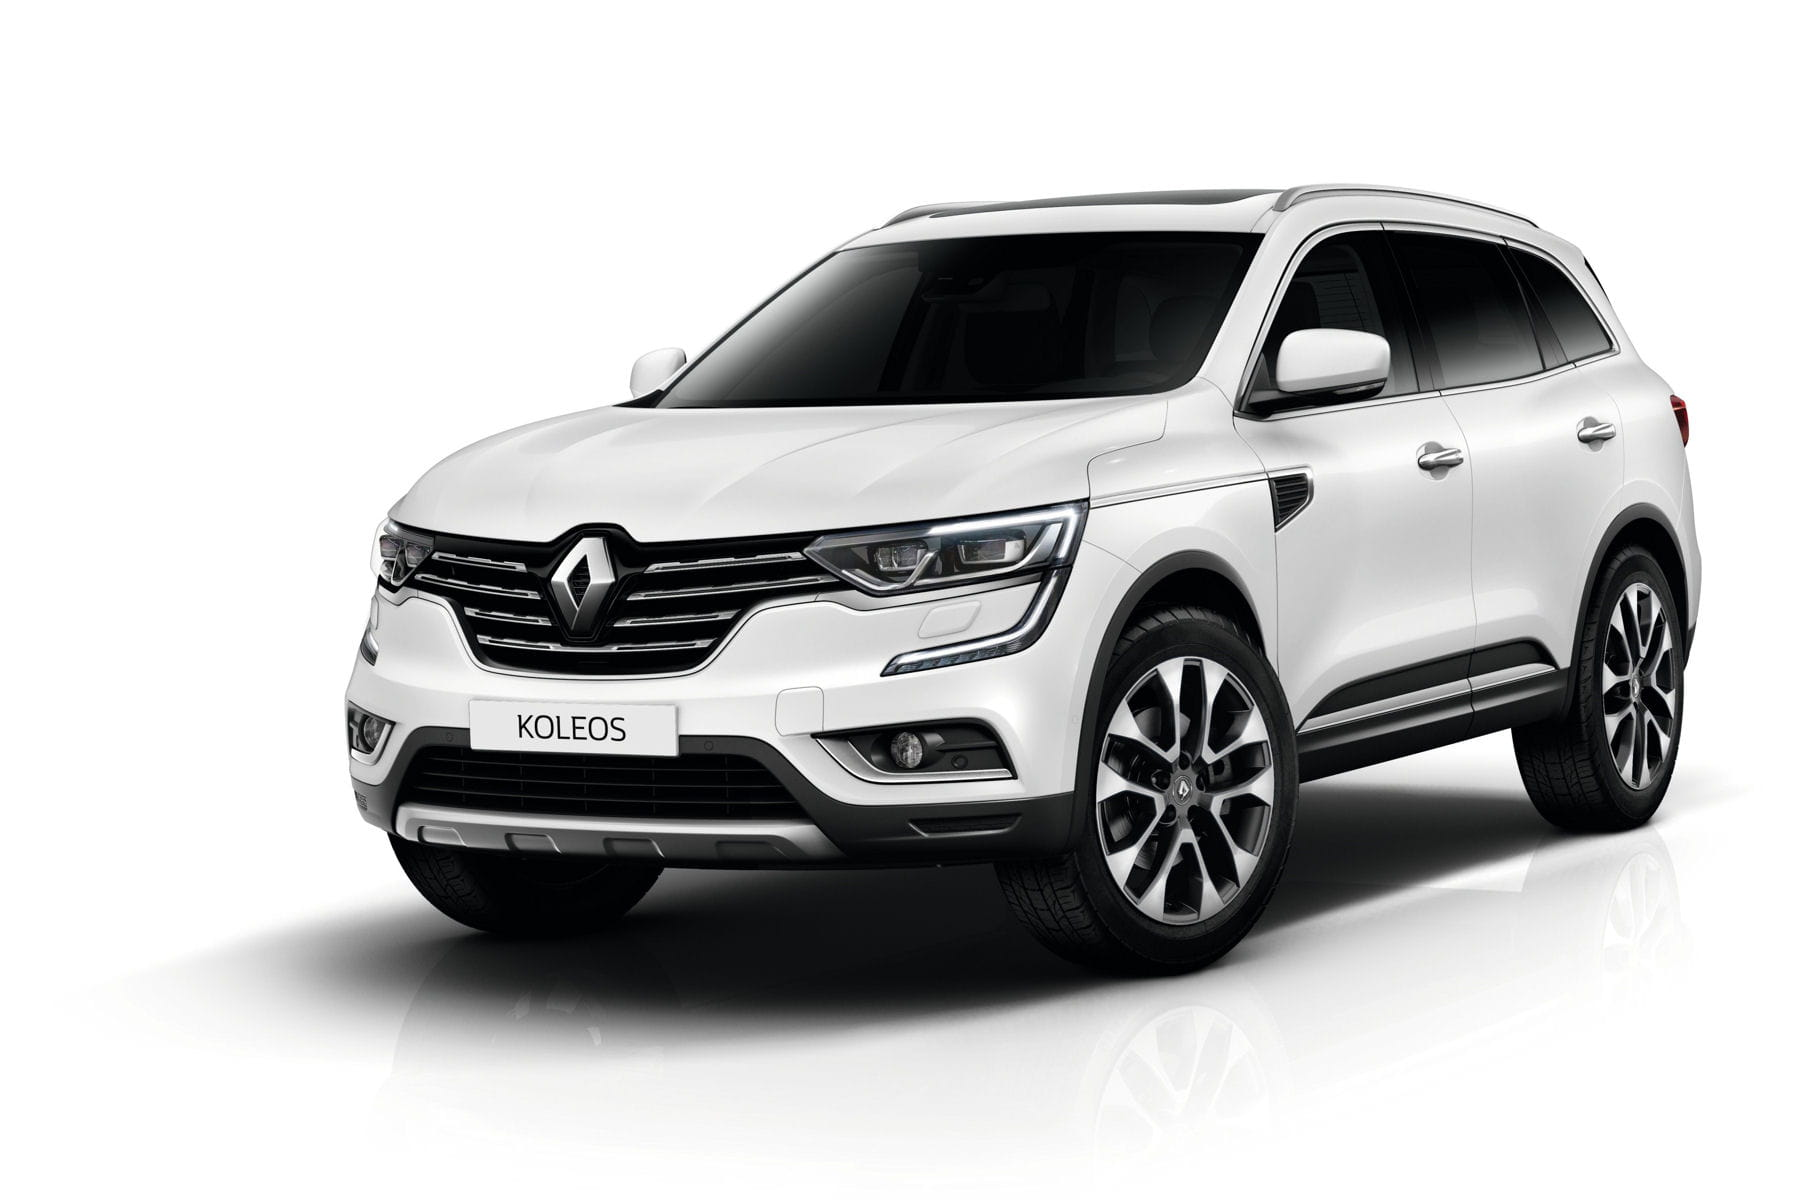 nouveau renault koleos un grand suv proche de la talisman infos photos prix date. Black Bedroom Furniture Sets. Home Design Ideas